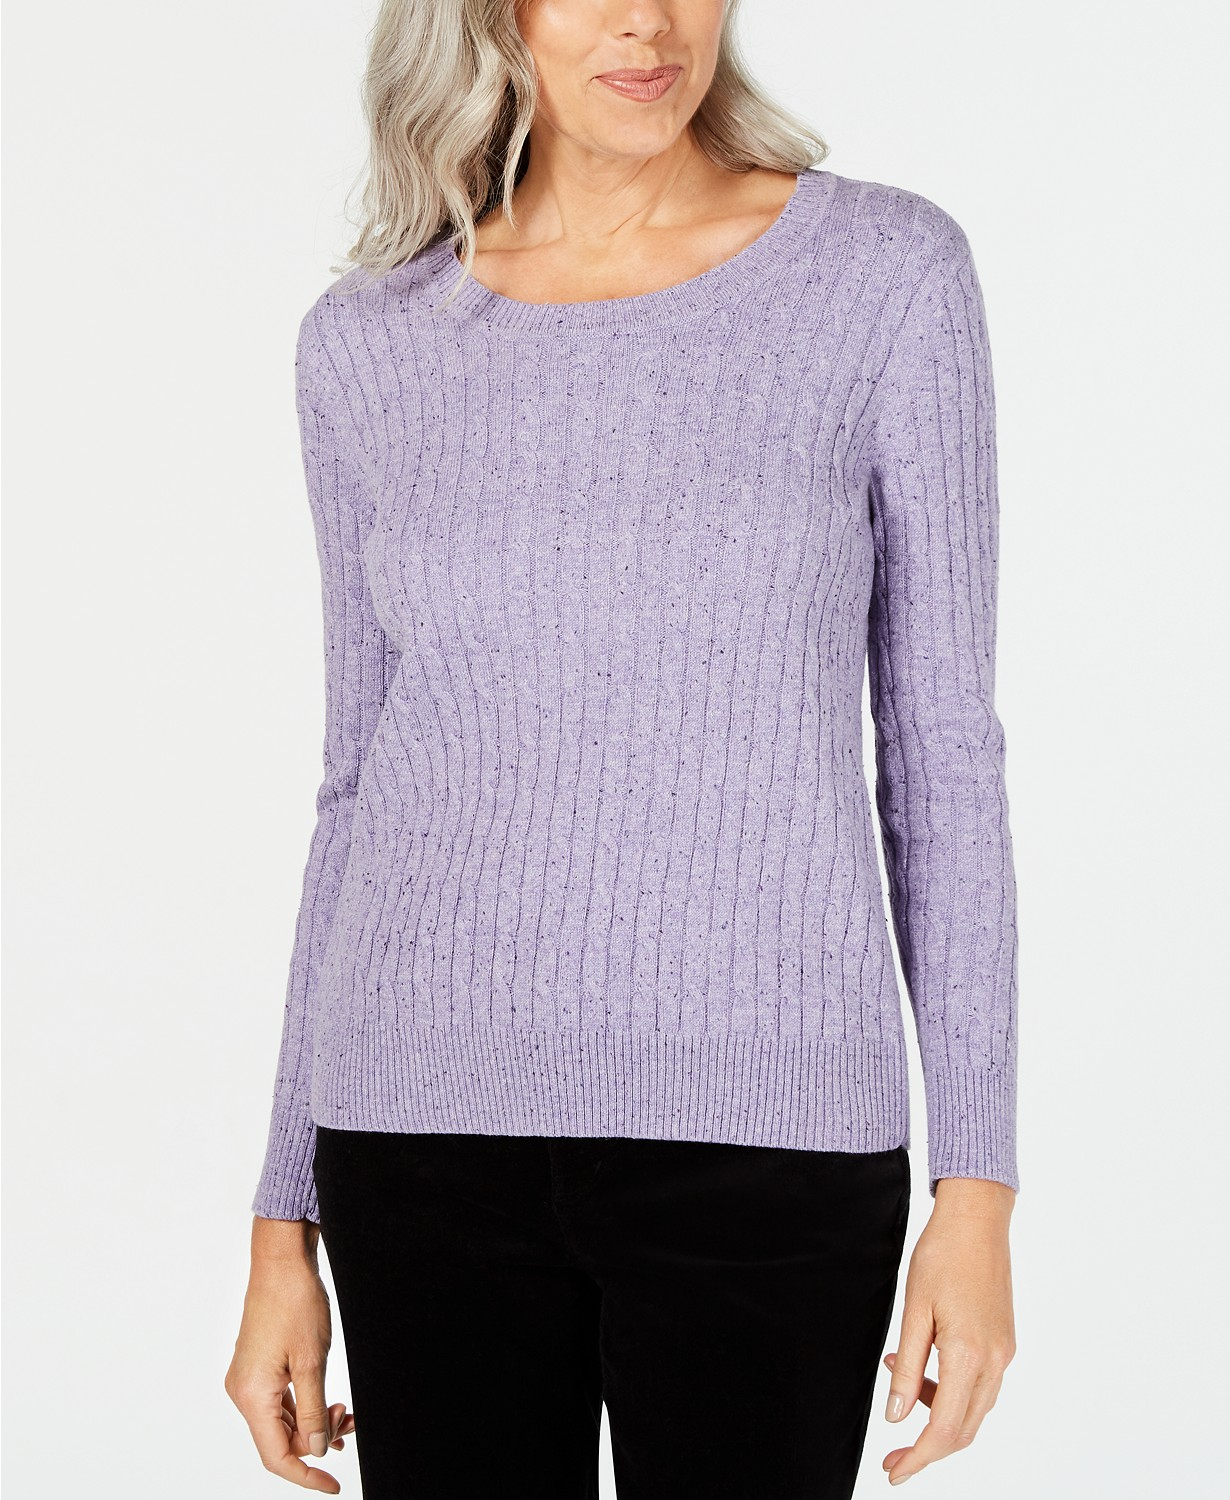 Style & Co Womens Sweater Purple Size 3X Plus Knitted Cable Knit $69 #010 | eBay